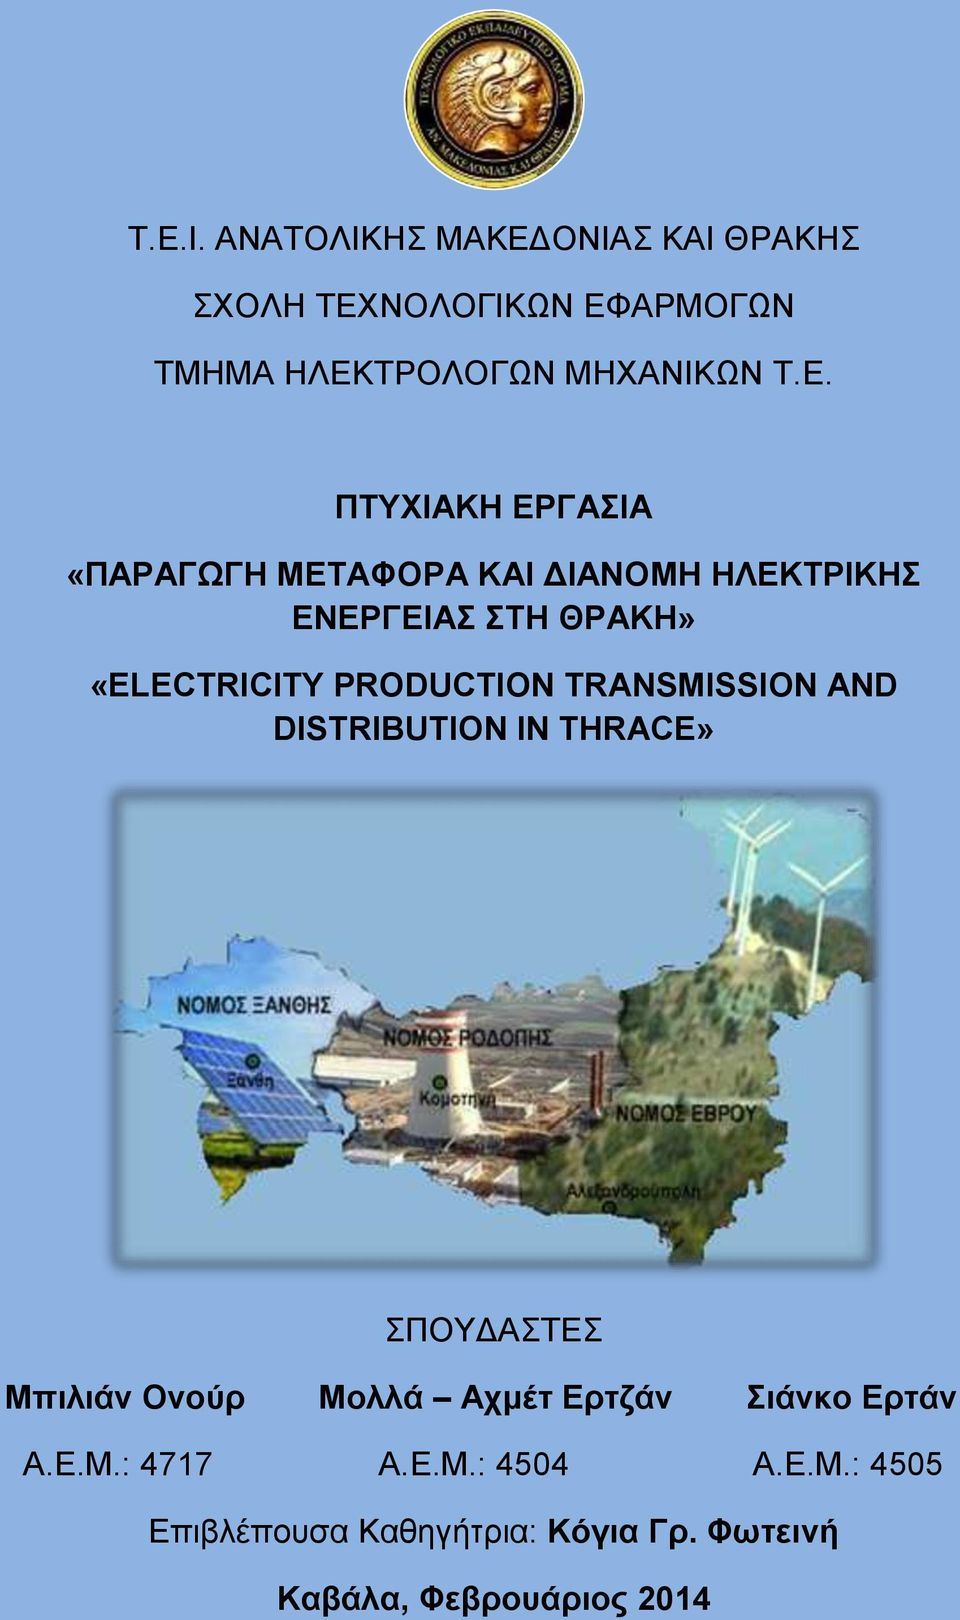 PRODUCTION TRANSMISSION AND DISTRIBUTION IN THRACE» ΣΠΟΥΔΑΣΤEΣ Μπιλιάν Ονούρ Μολλά Αχμέτ Ερτζάν Σιάνκο